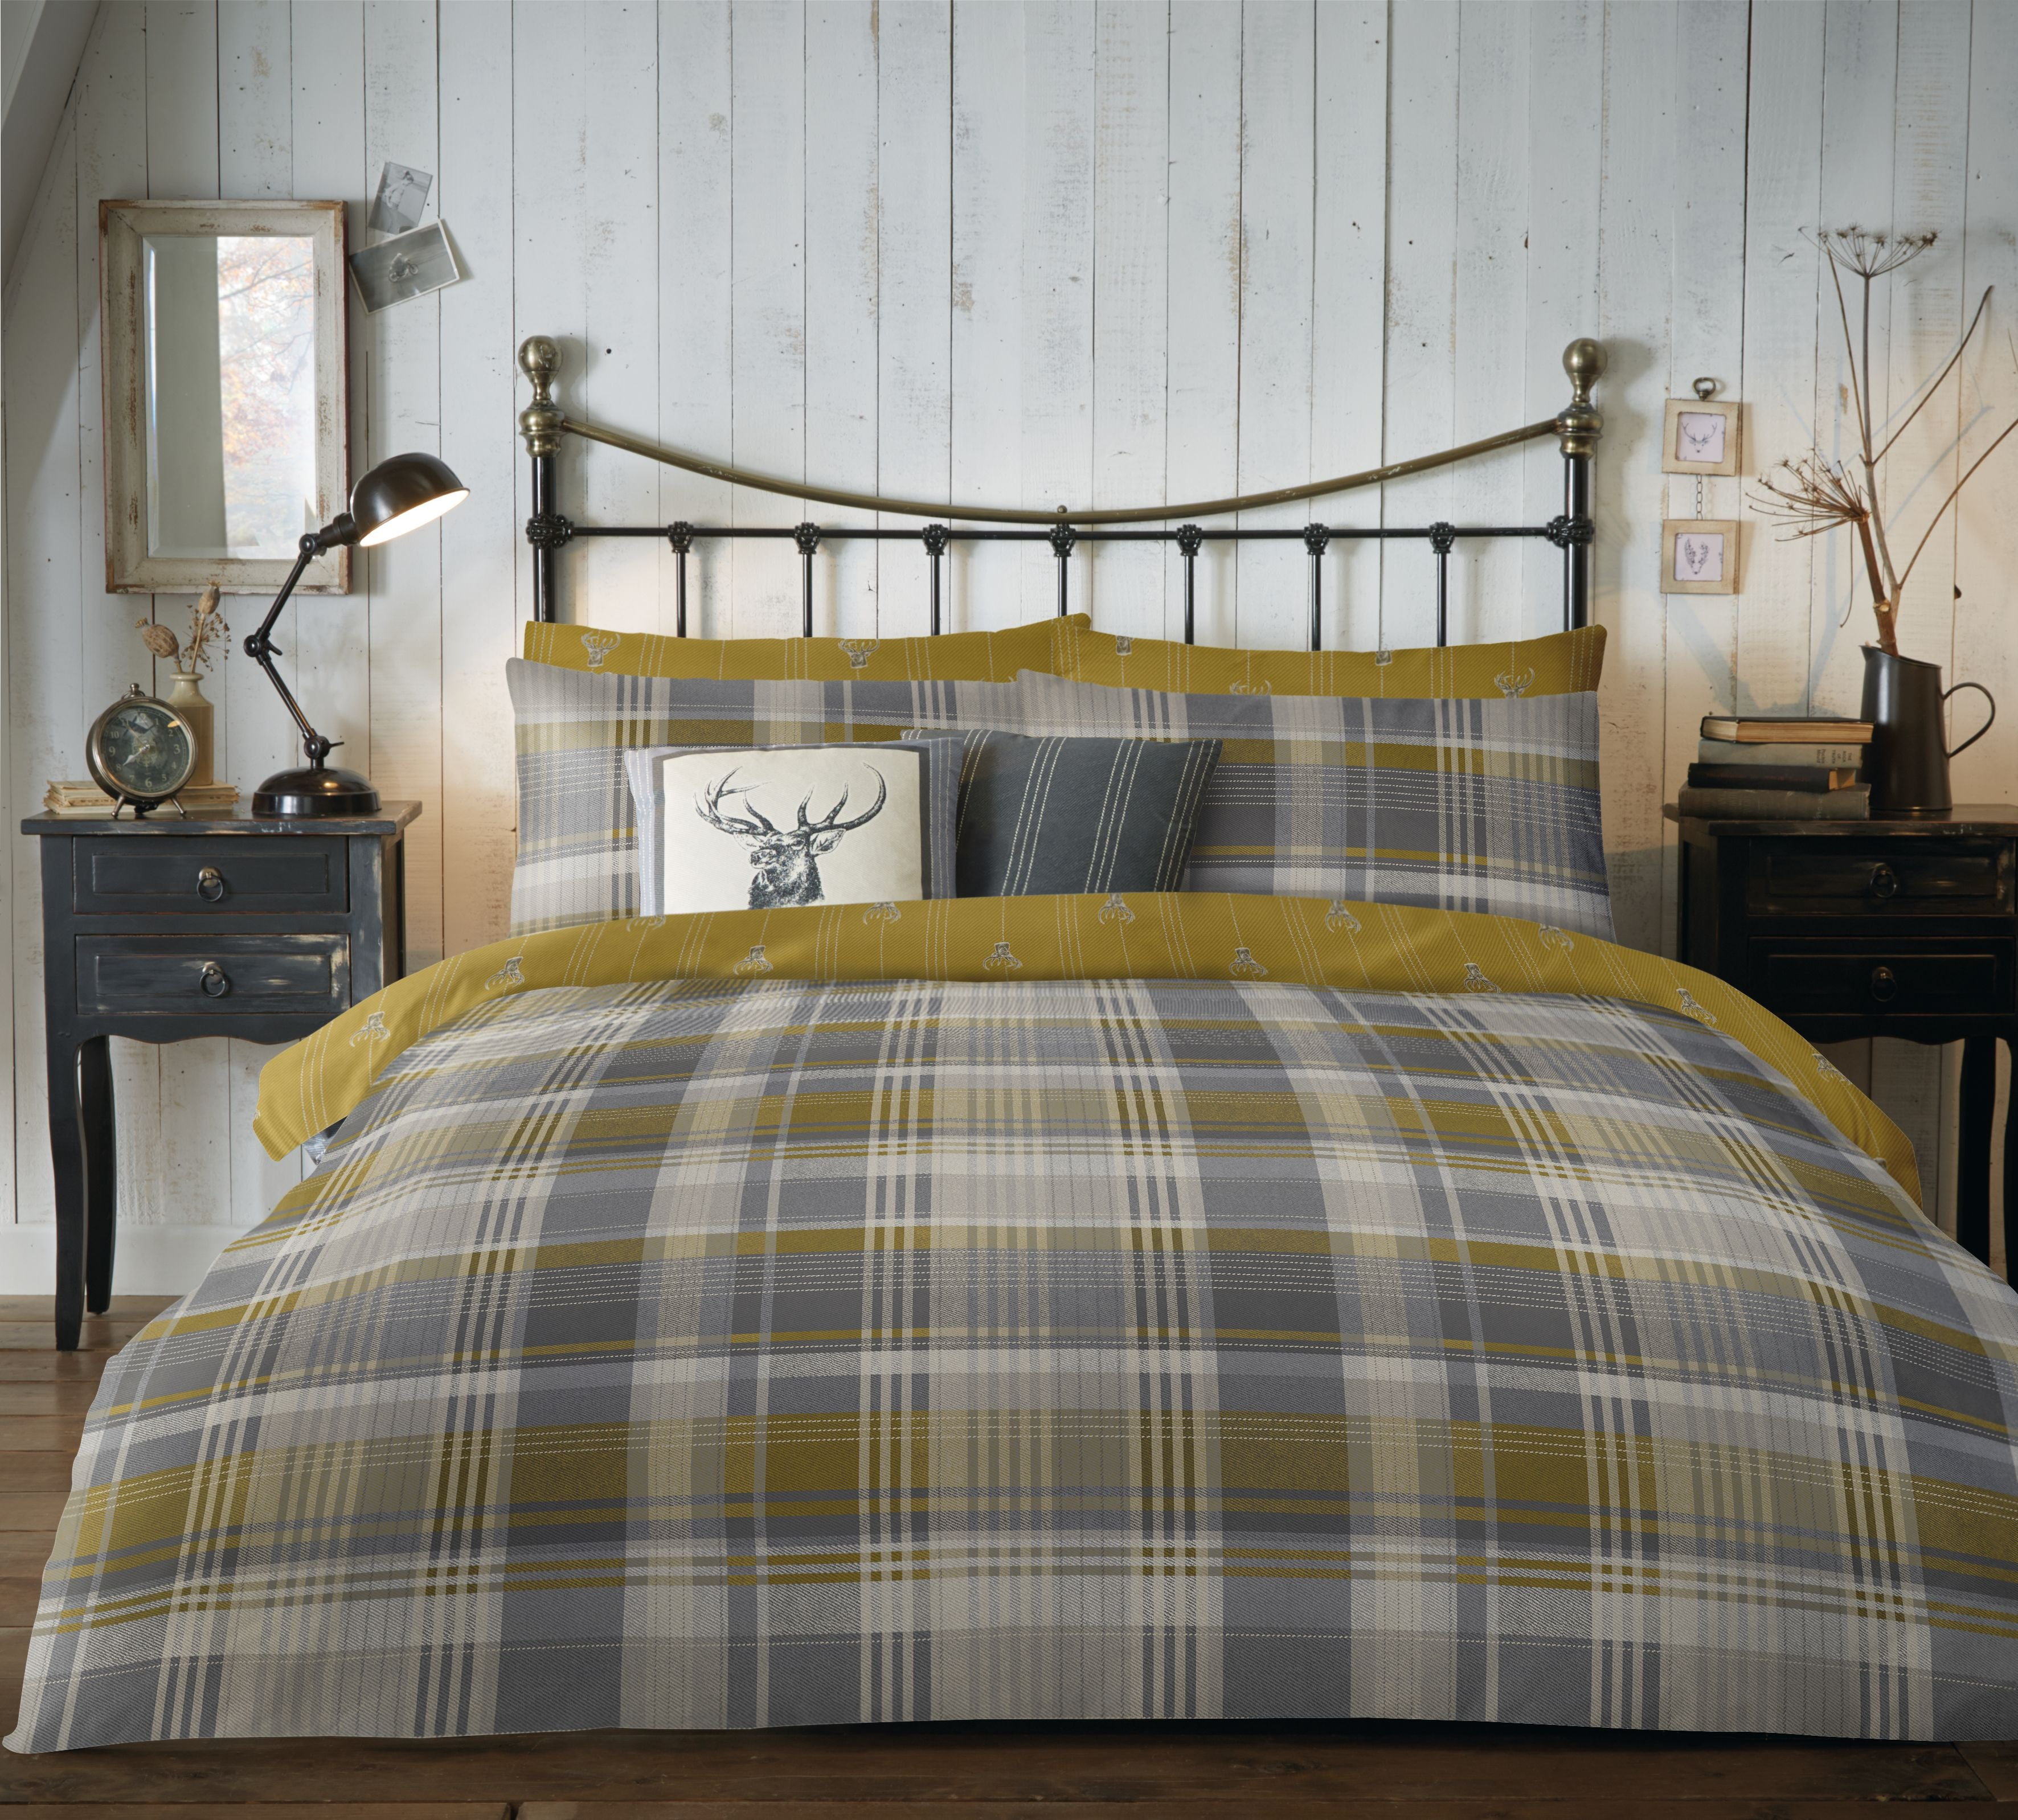 Connolly Check - 100% Brushed Cotton Checked Duvet Set in Ochre- by D&D Lodge